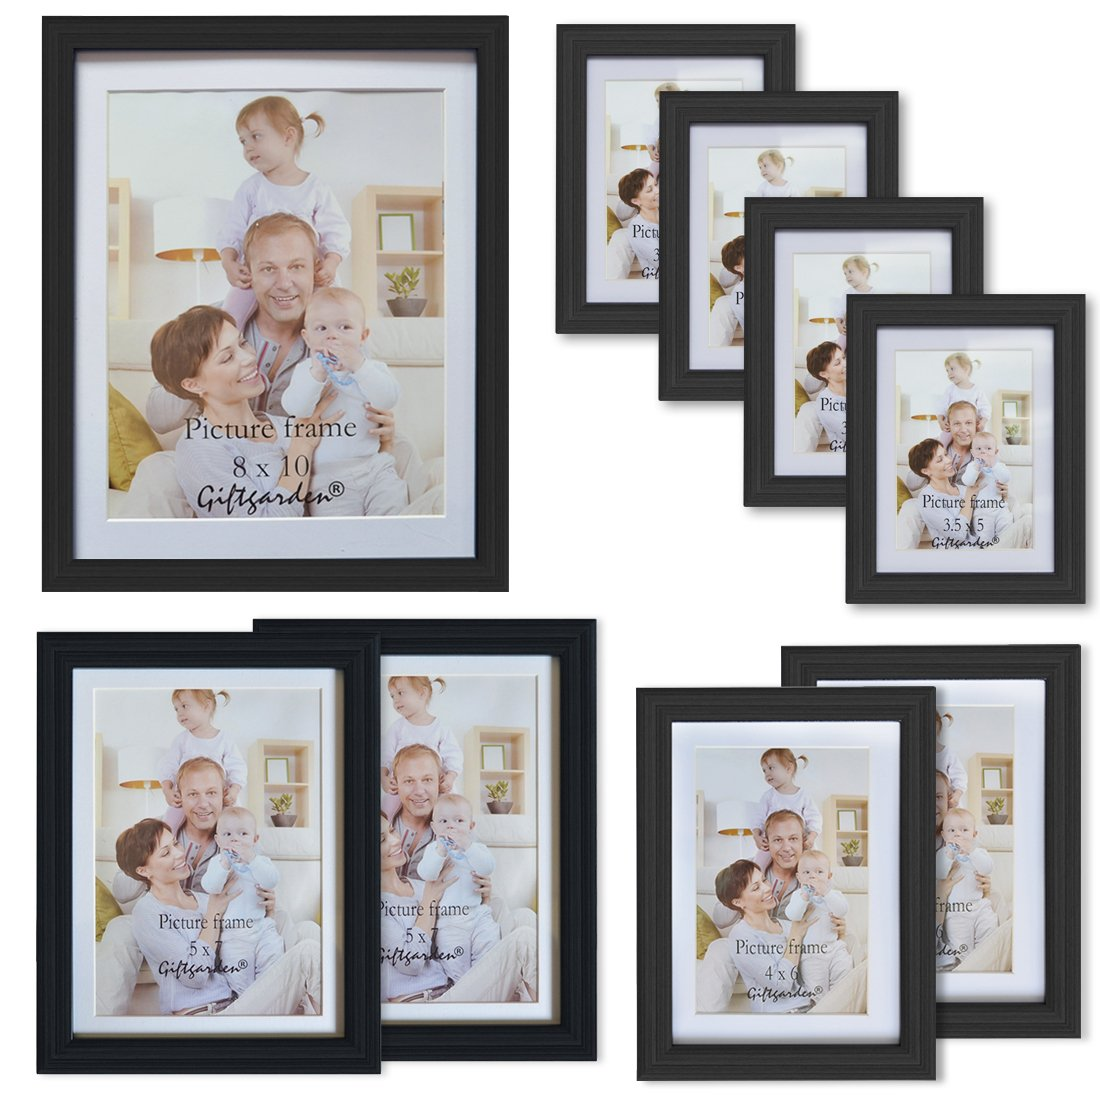 Amazon.com: Giftgarden Black Matted Picture Frames Collage Multi ...